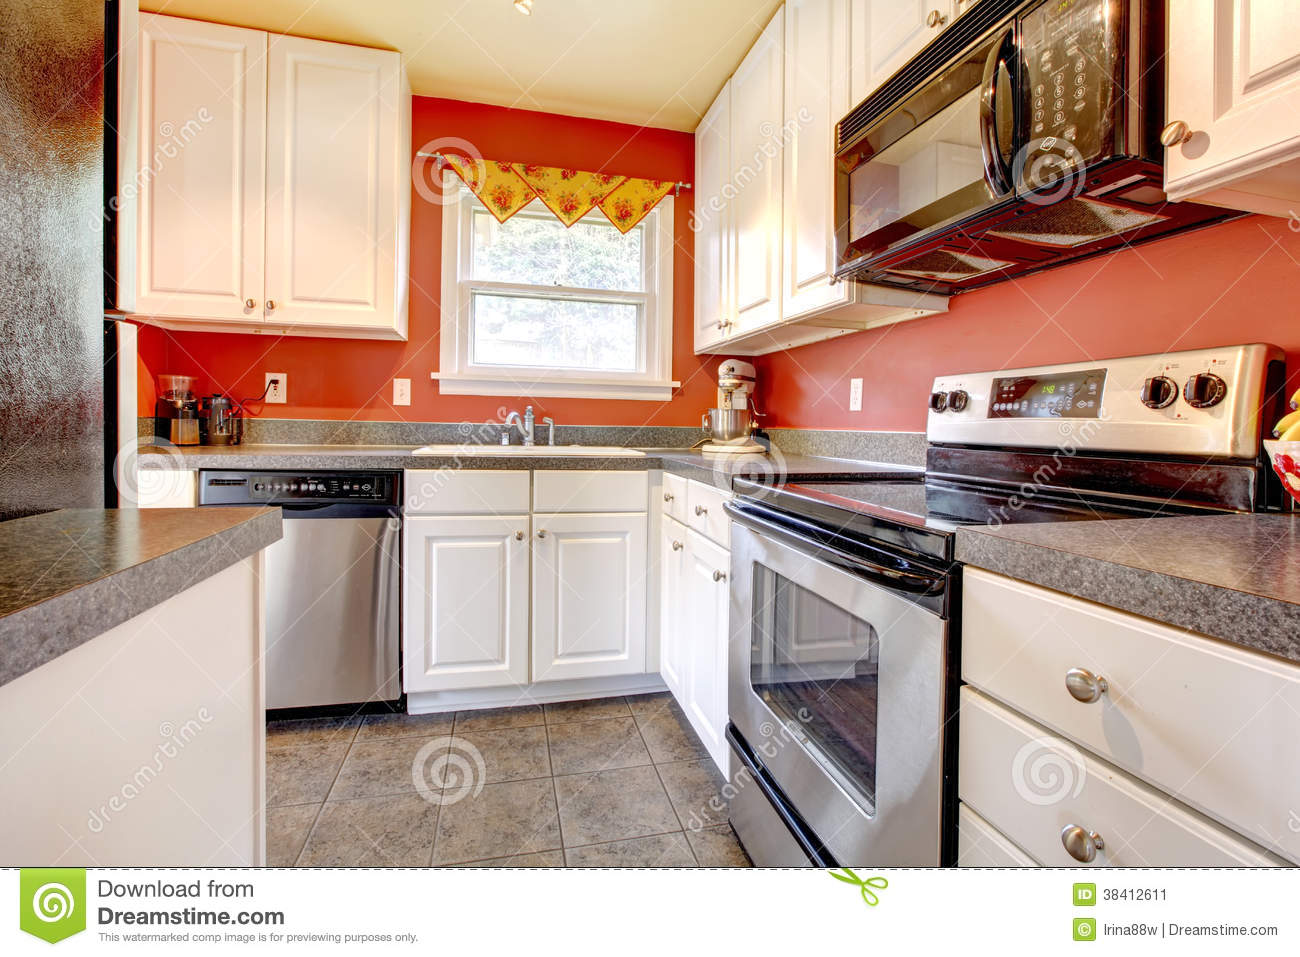 Cozy Kitchen Room With Red Wall And White Cabinets Stock Image  Image